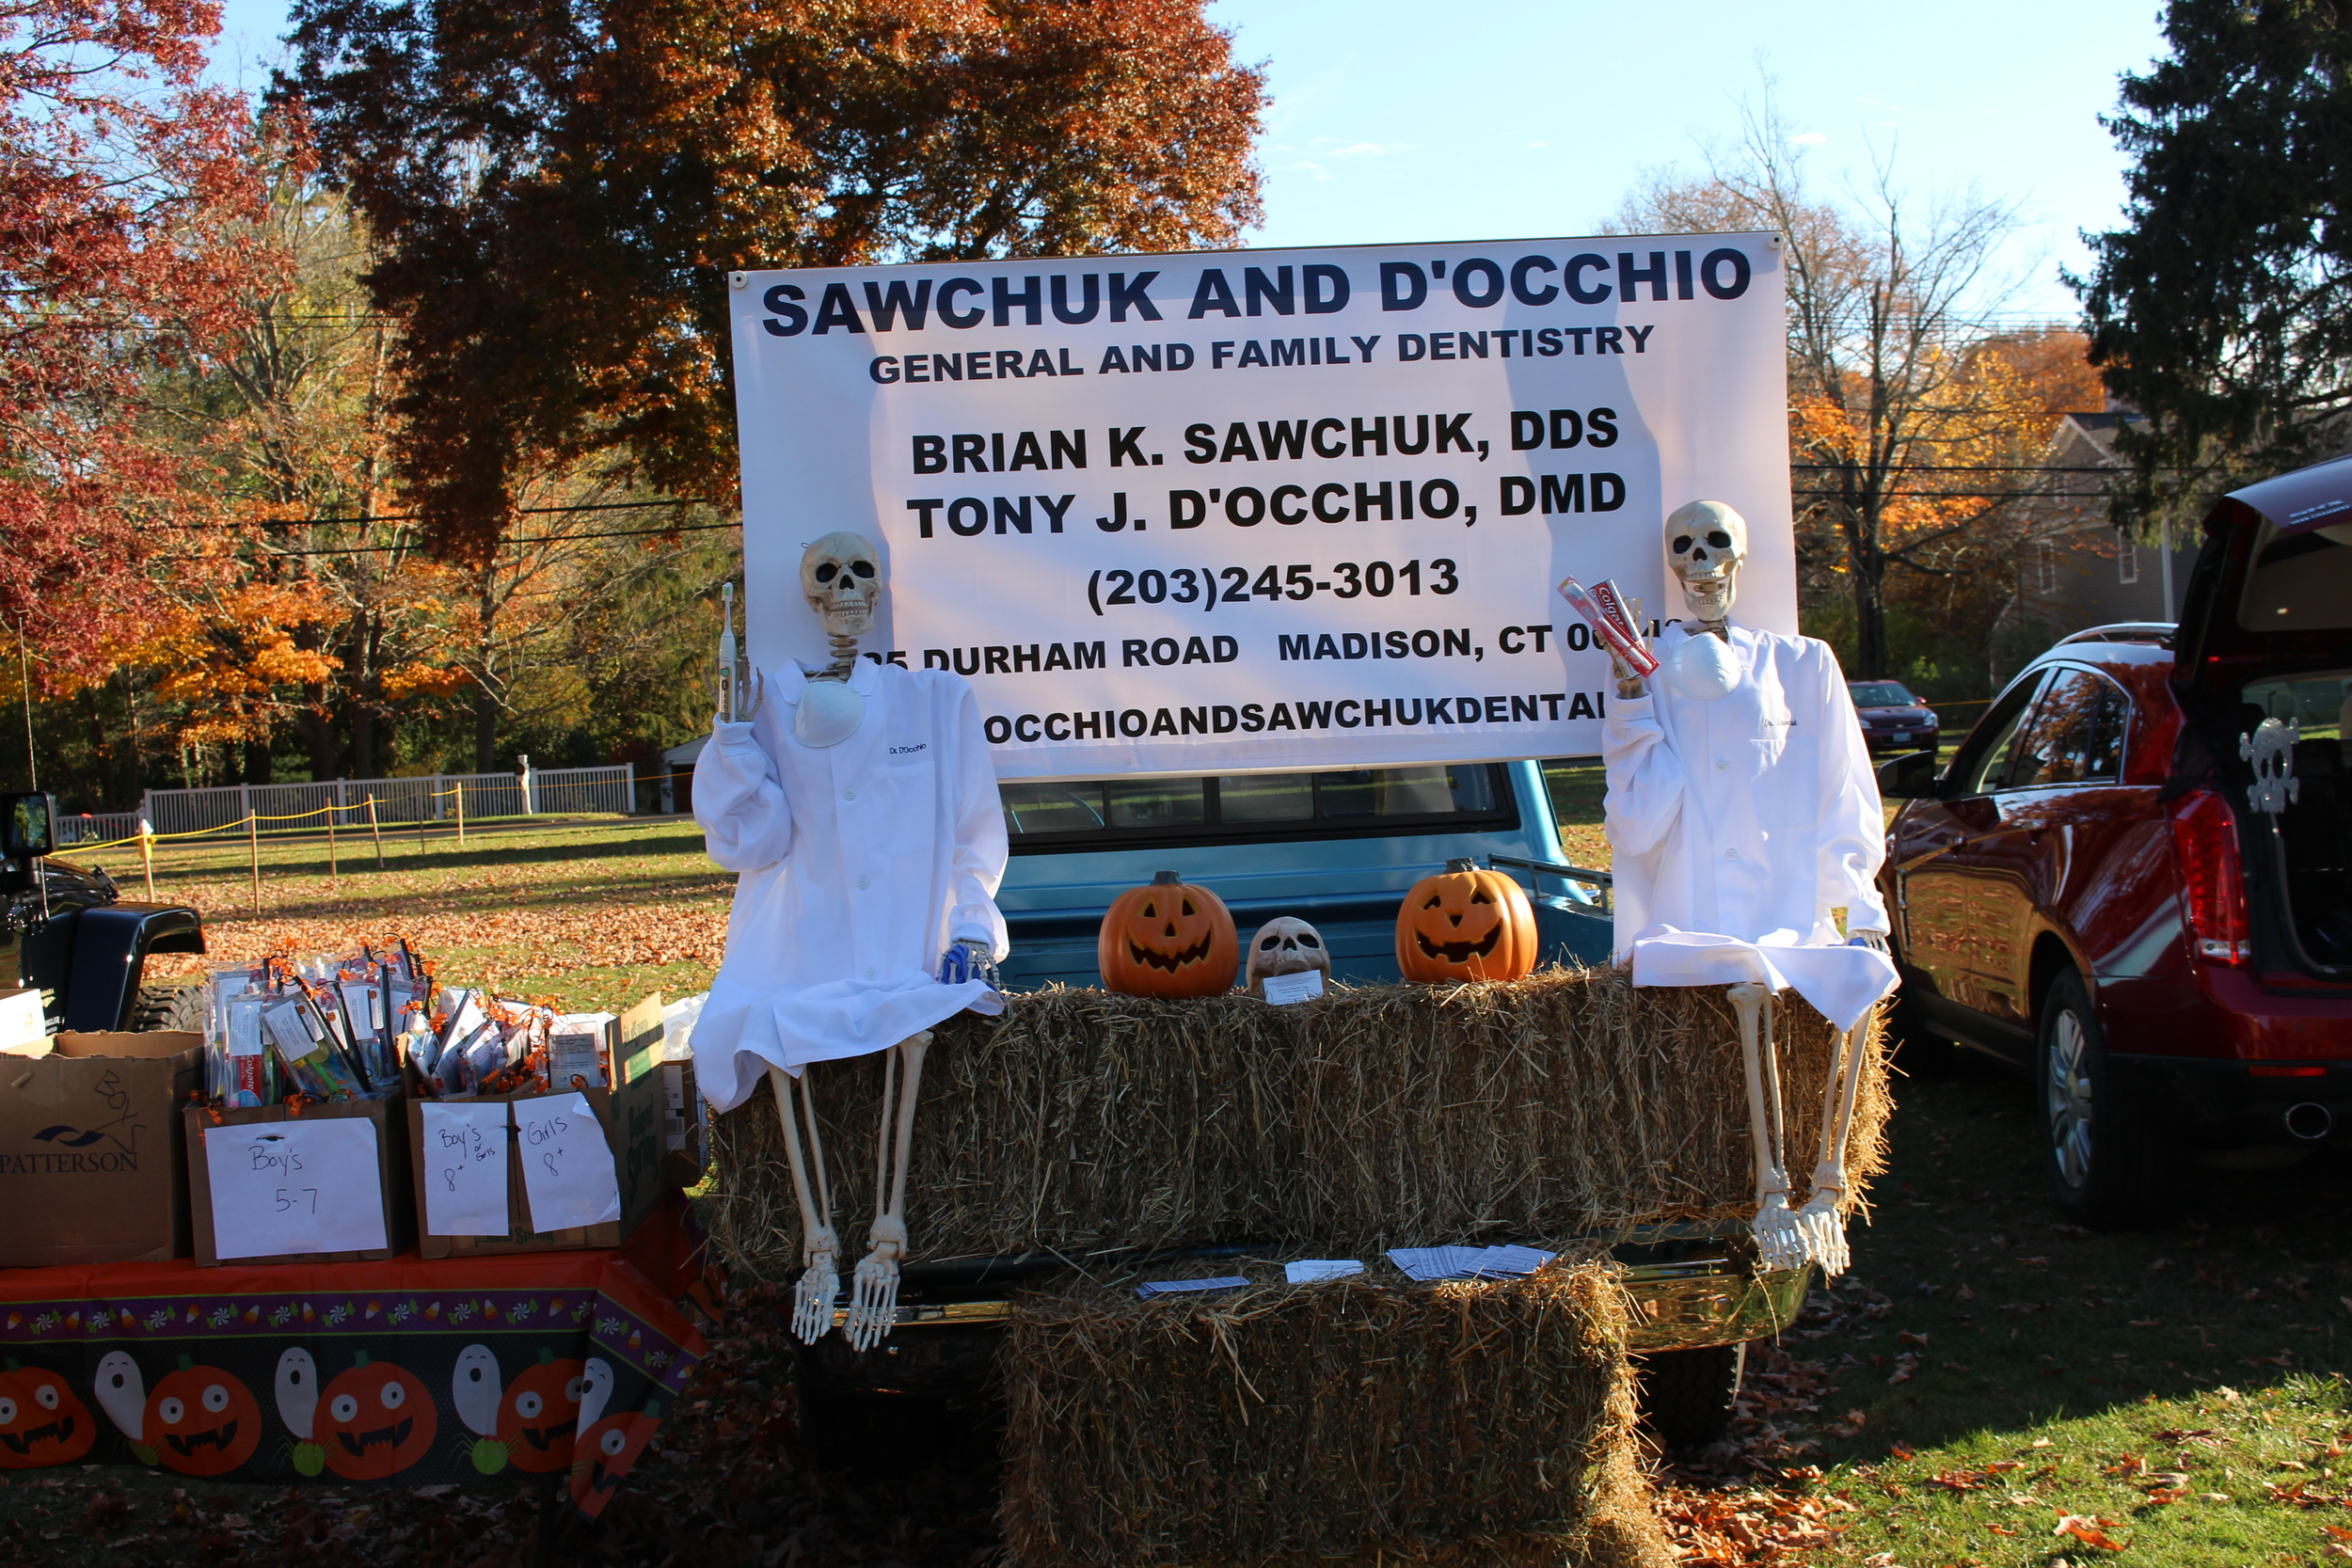 Madison, CT Trunk or Treat